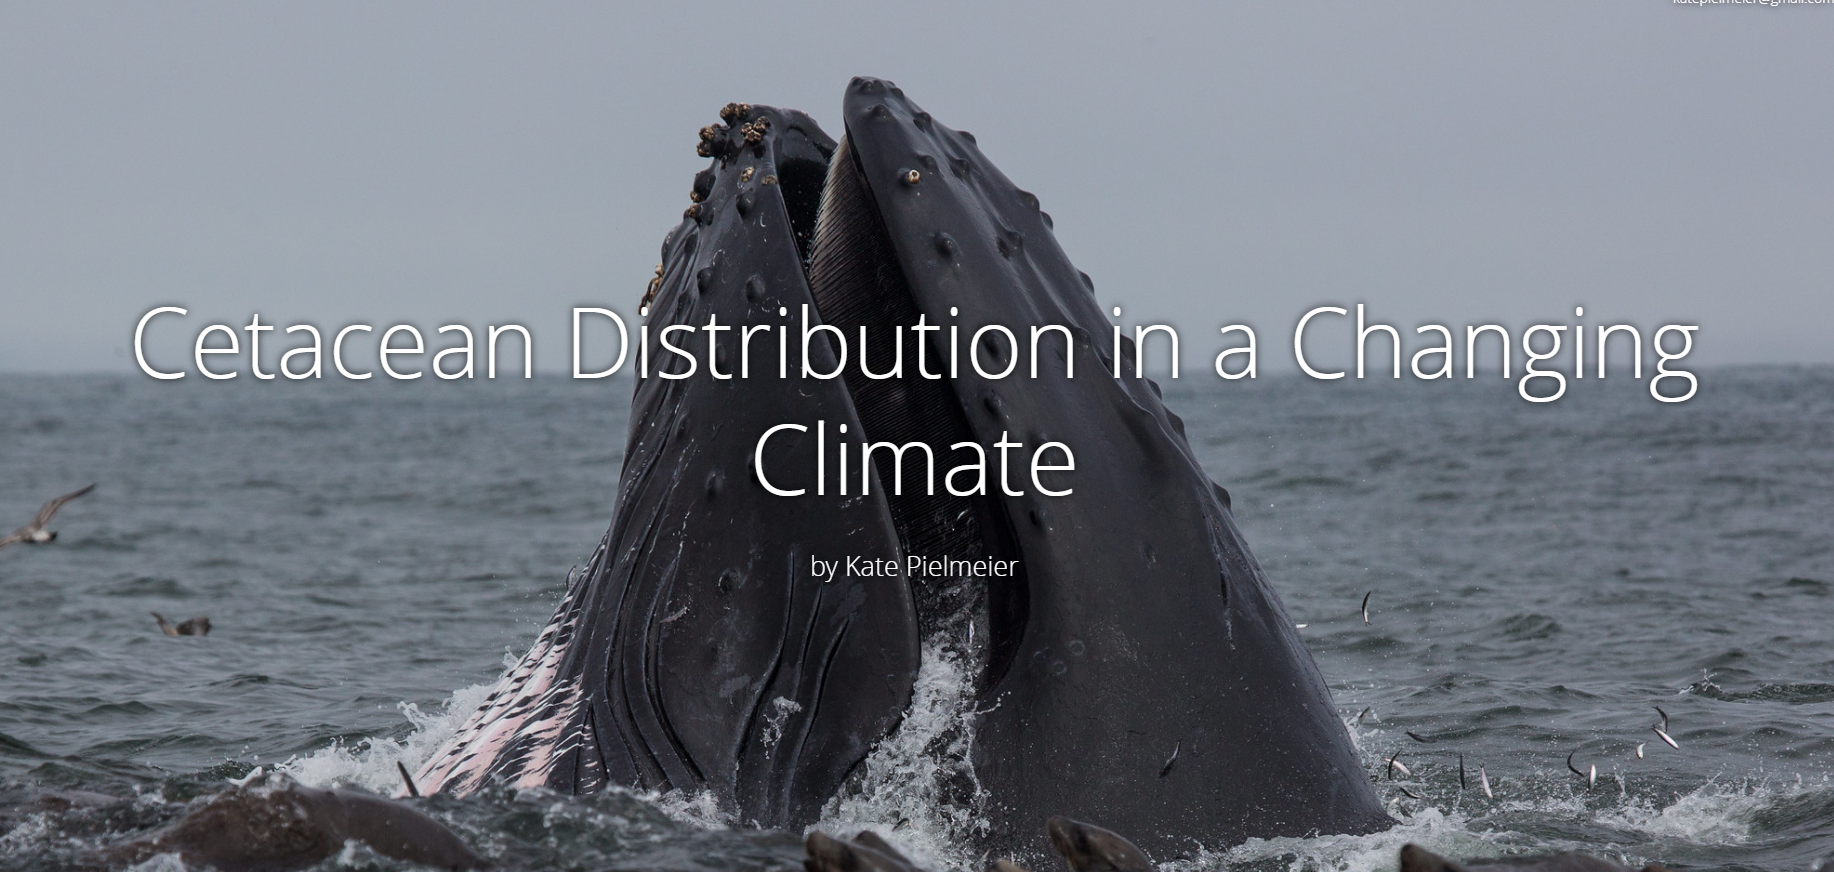 Cetacean Distribution in a Changing Climate